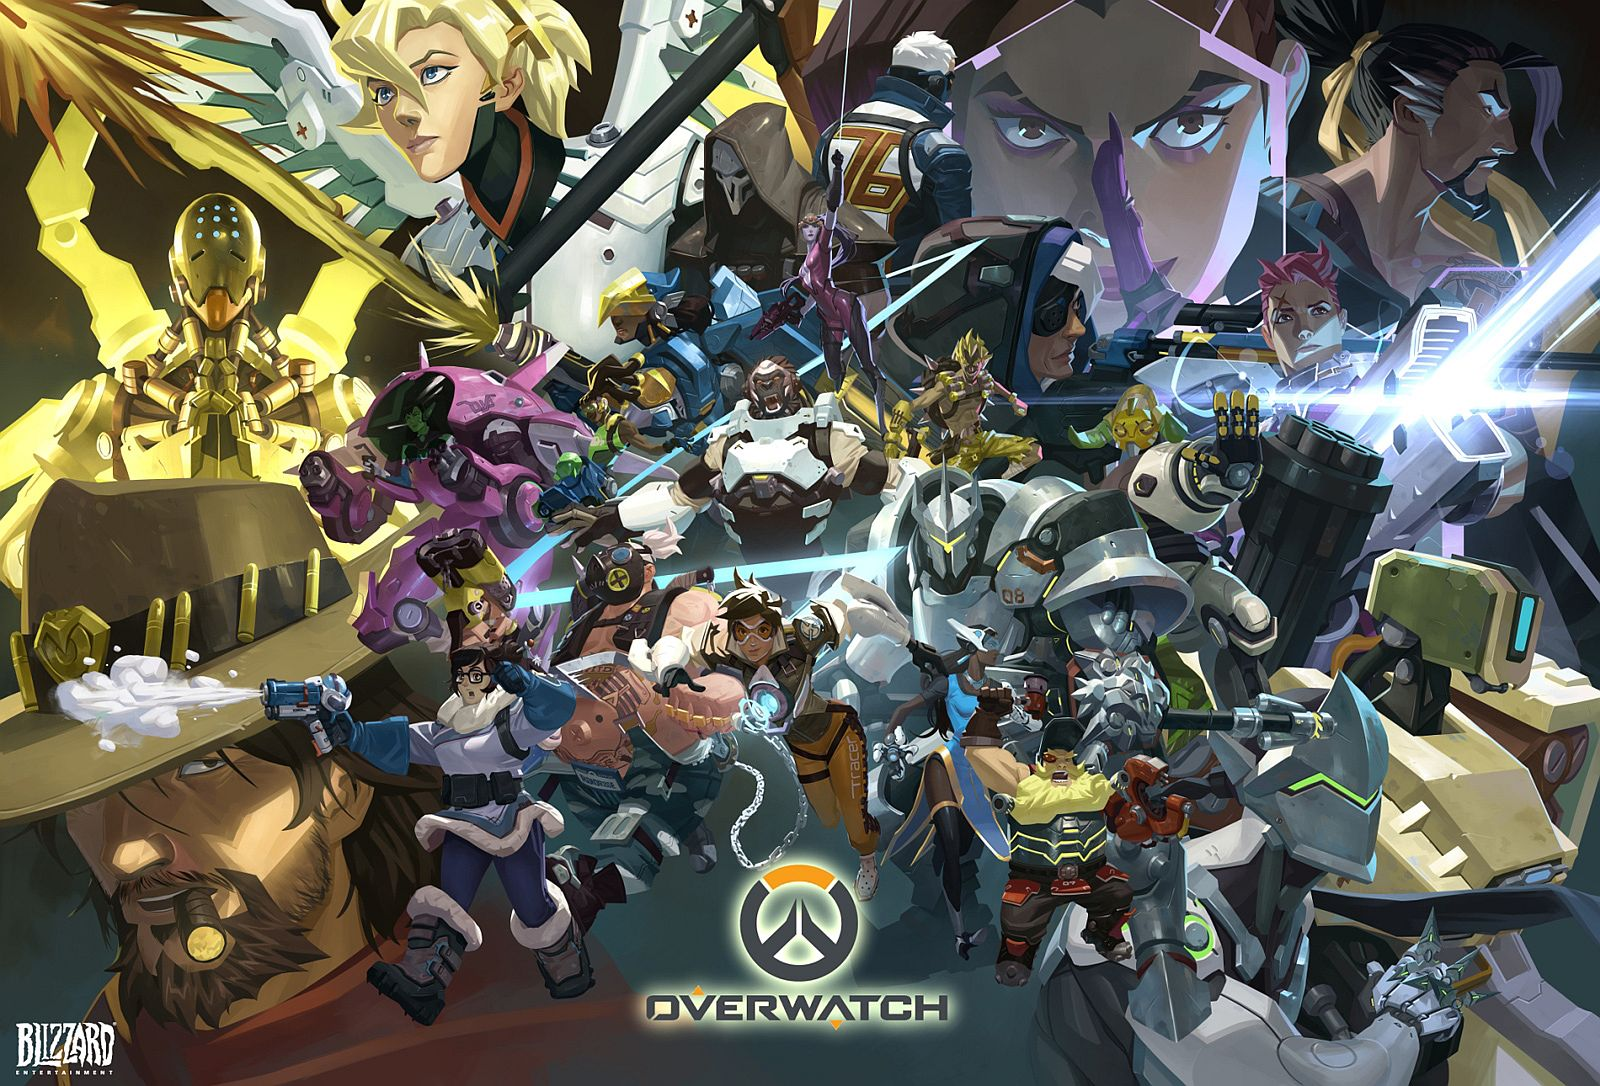 Pubg Hero By Gilbertgraphics: Overwatch Anniversary Event Starts May 23, Game Of The